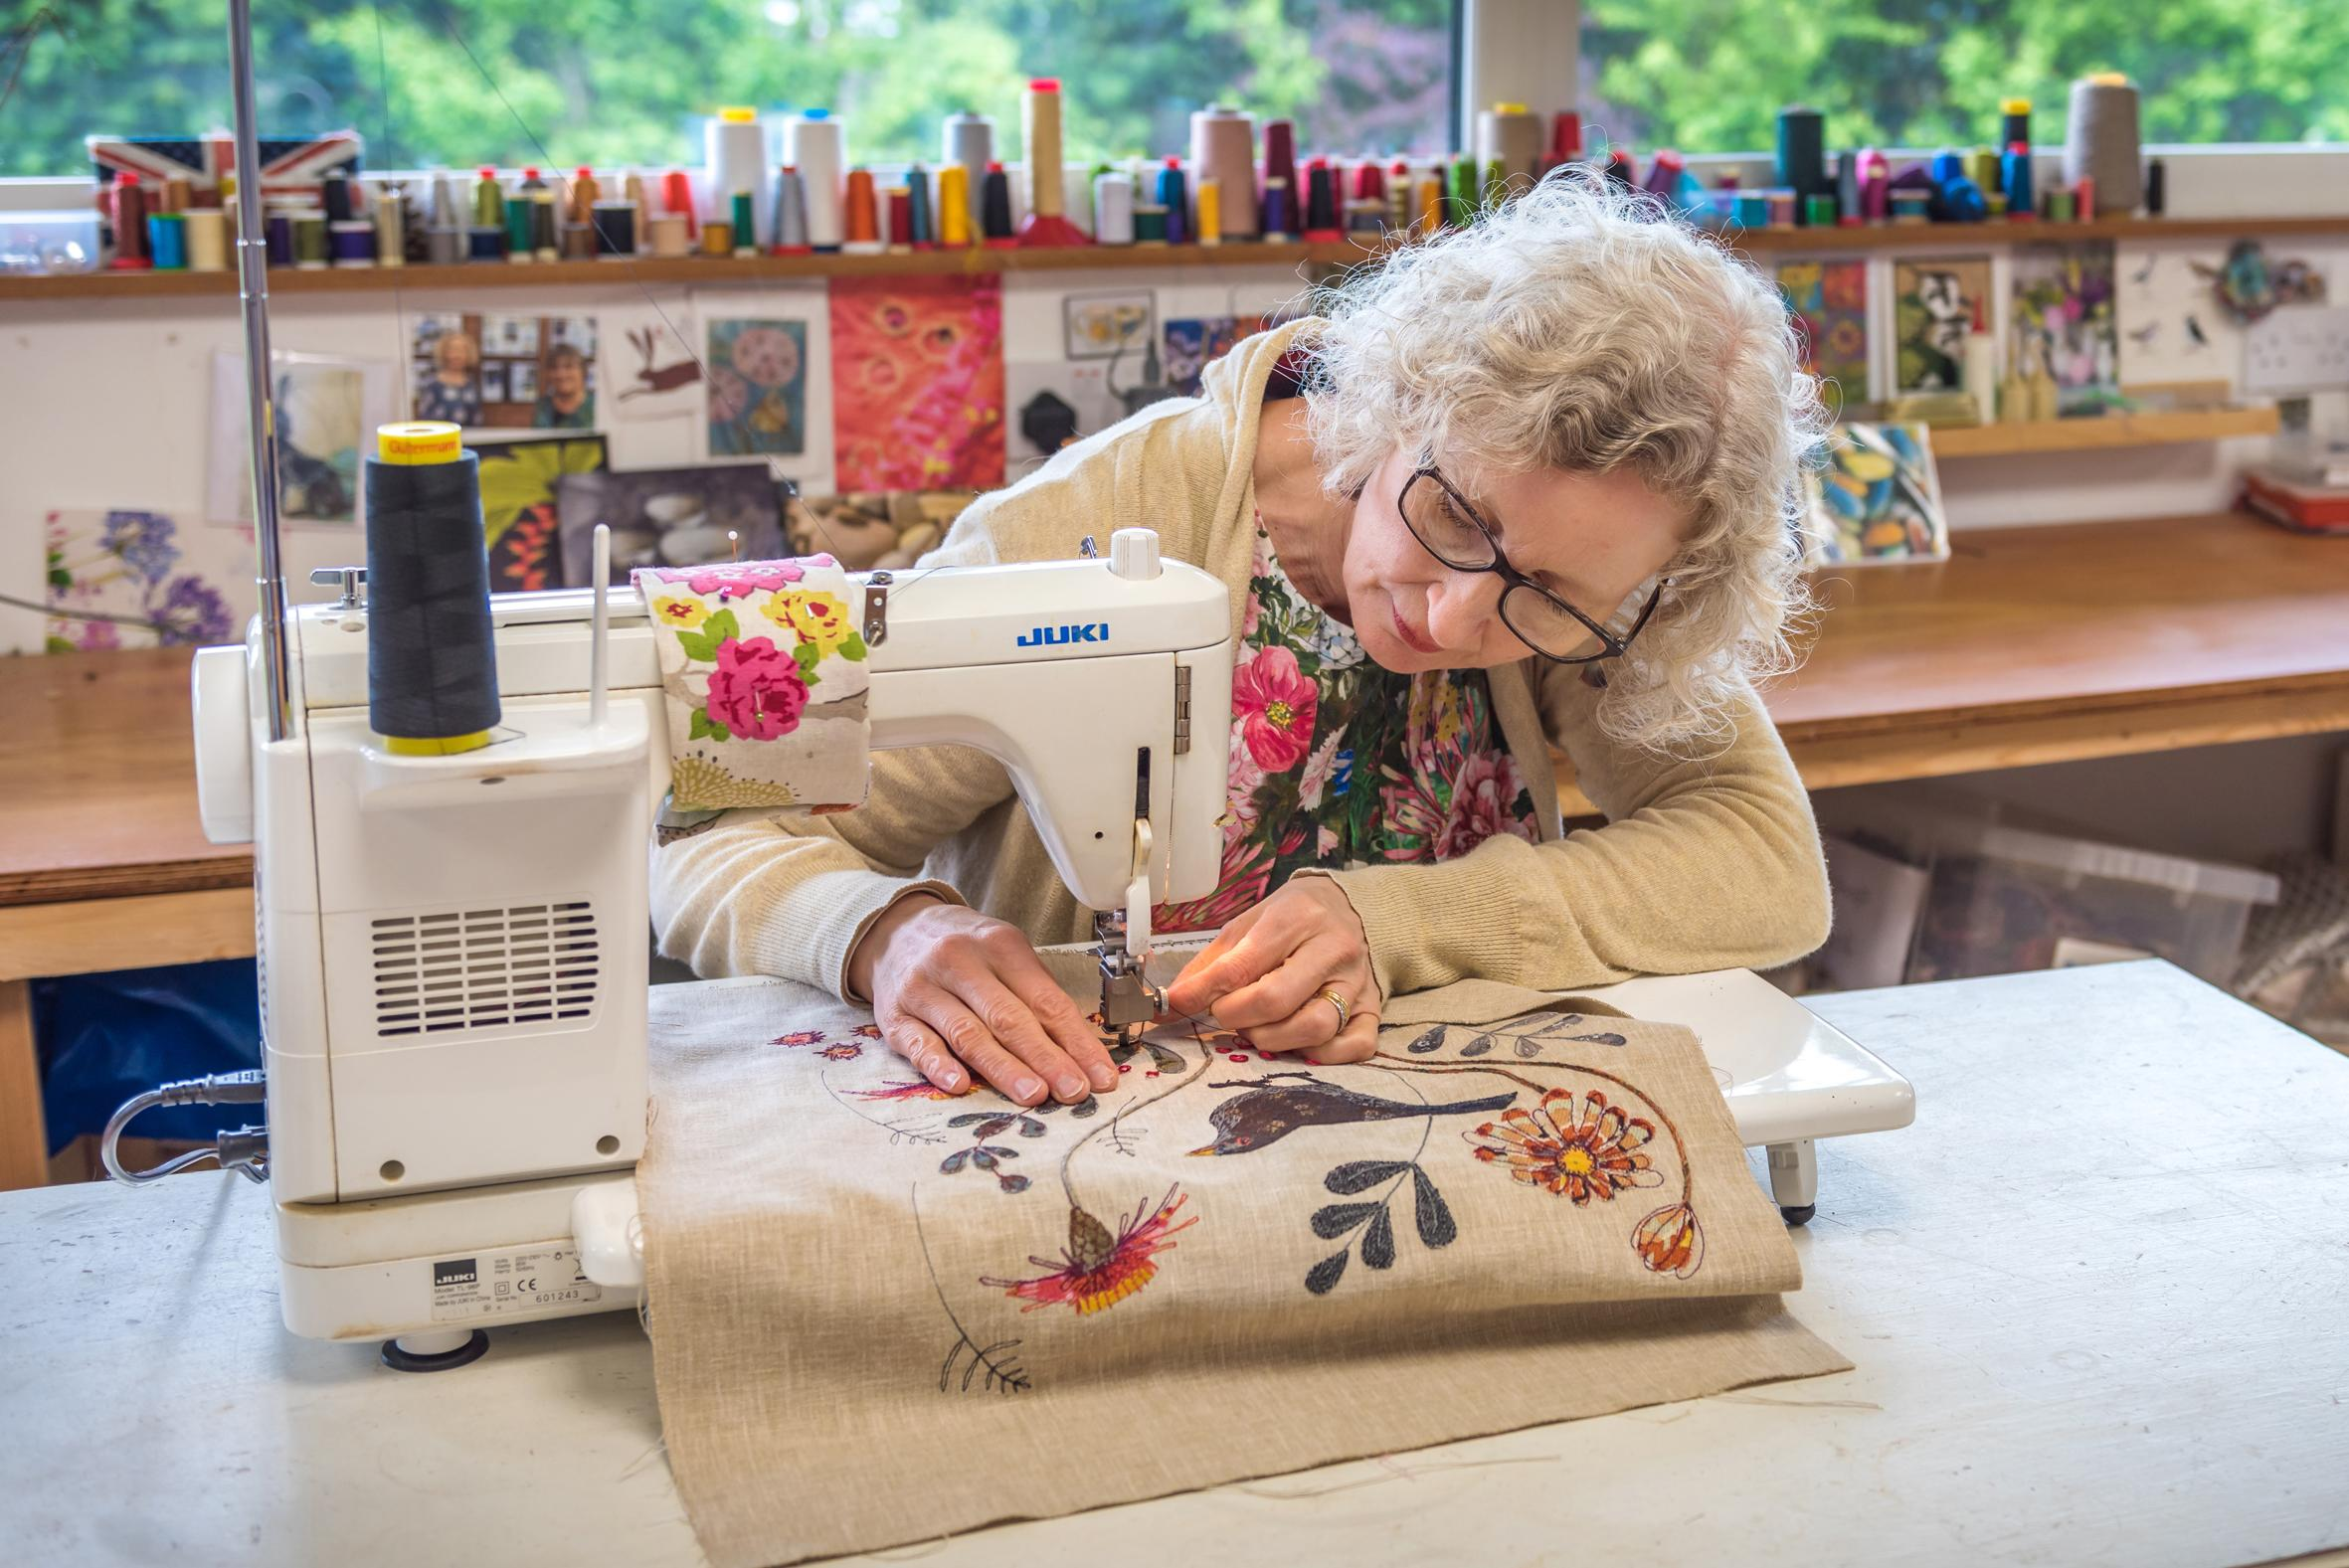 Jo Hill sewing on her machine in her garden studio